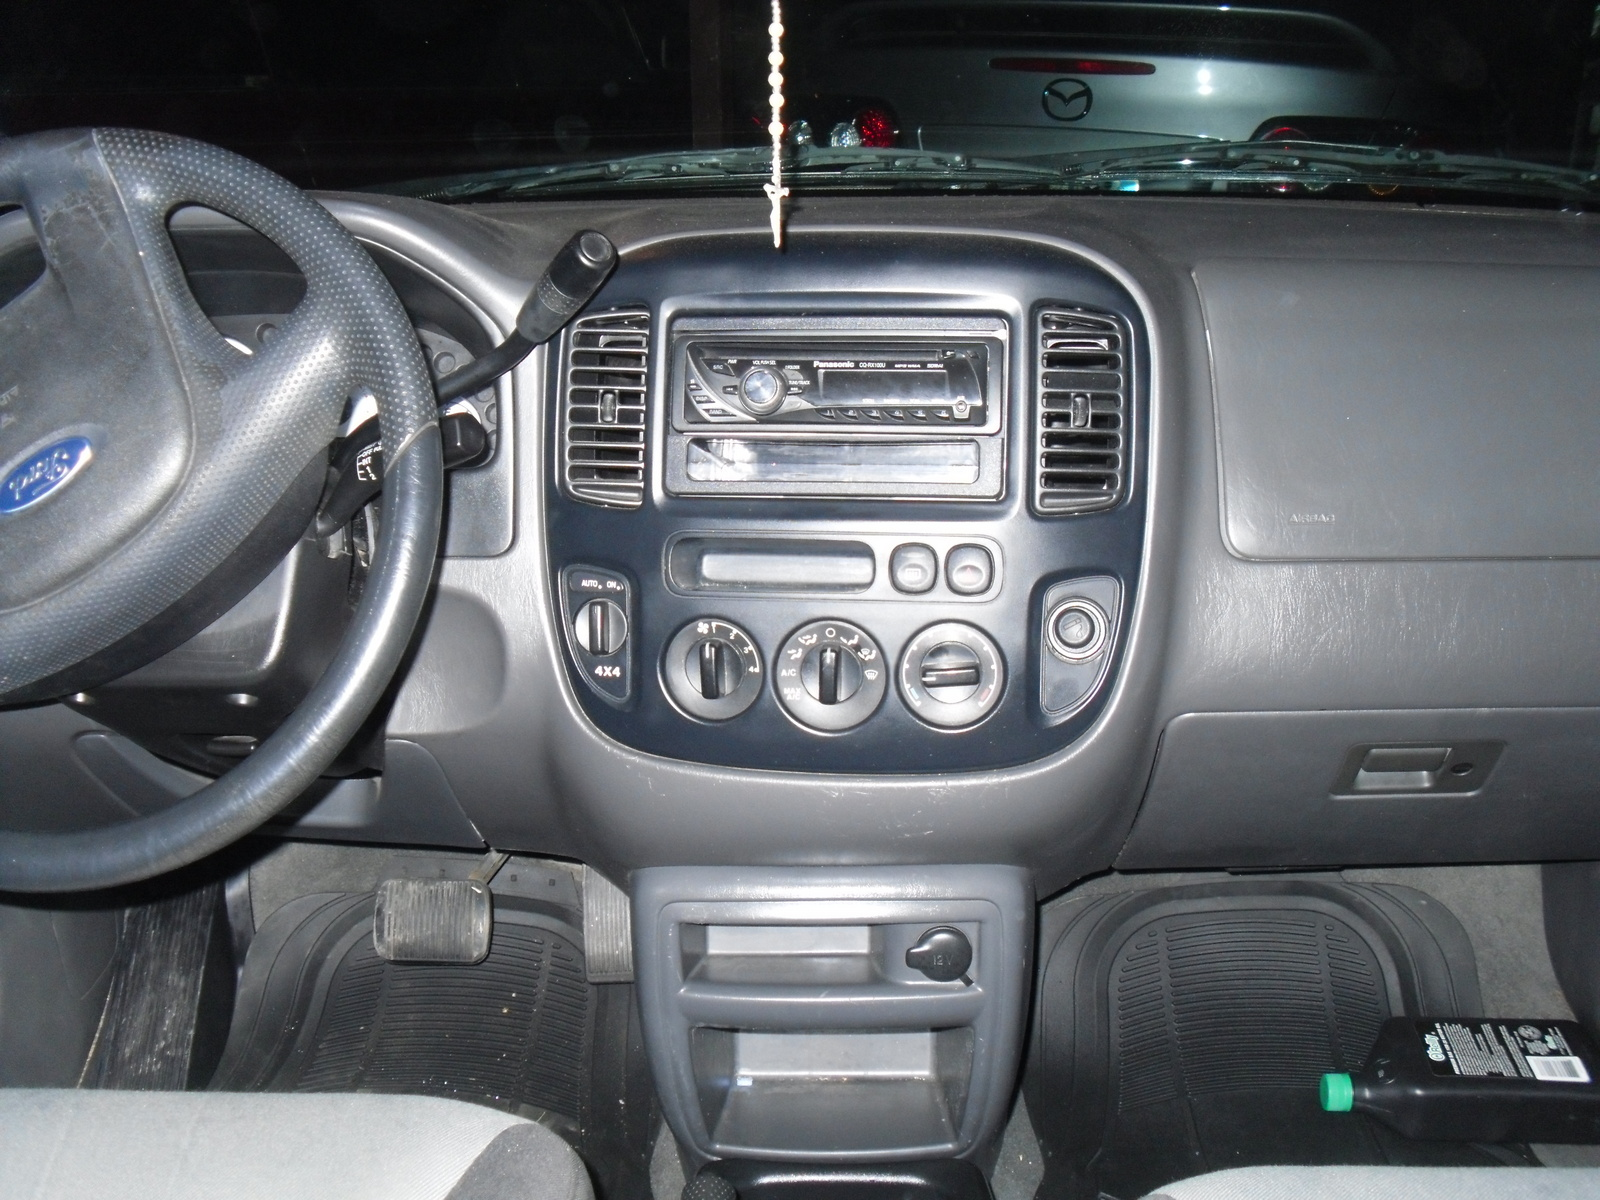 2004 ford escape interior pictures cargurus. Black Bedroom Furniture Sets. Home Design Ideas